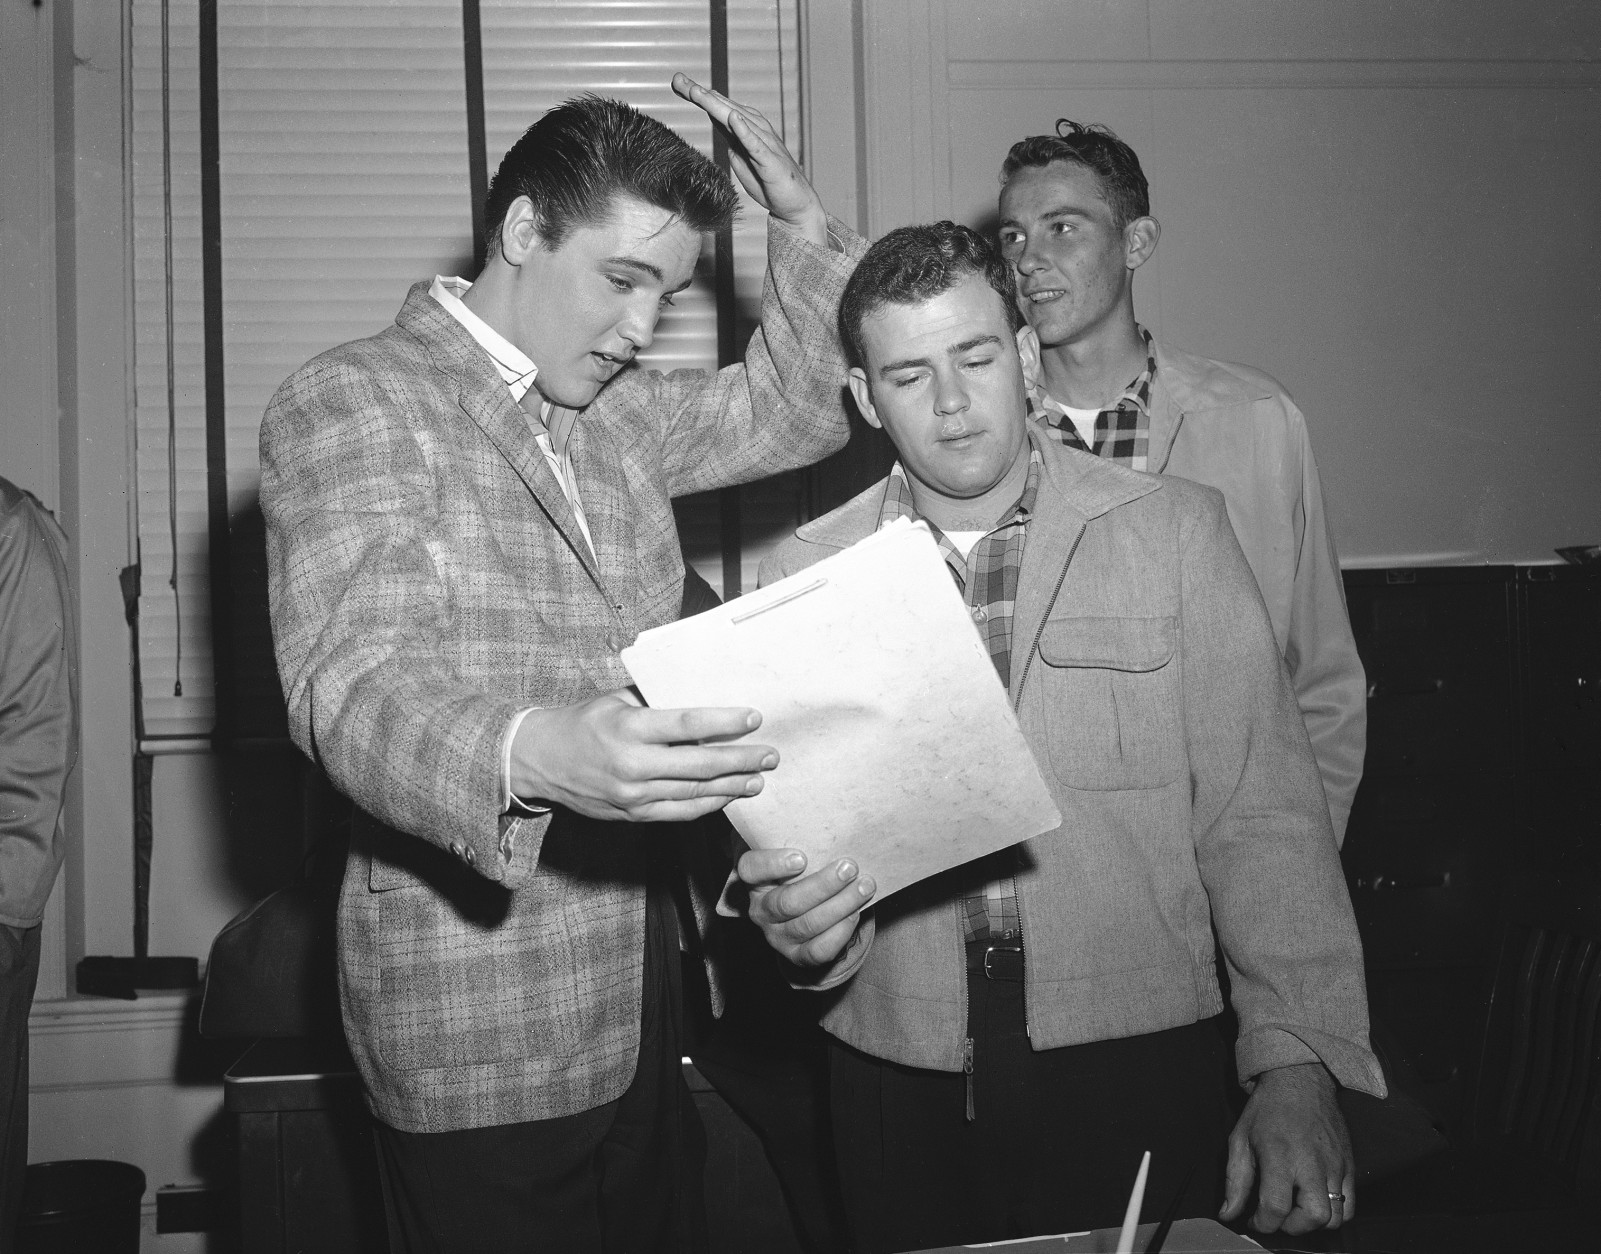 Elvis Presley, left, 23-year-old rock and roll singer, gestures at his short hair as he chats with a former school chum, Farley Gey, 22, who is entering the Army with Elvis, in Memphis, March 24, 1958. Robert Maharrey, 22, another inductee, looks on from the rear. The scene took place at the local draft board headquarters. (AP Photo/Fred J. Griffith)